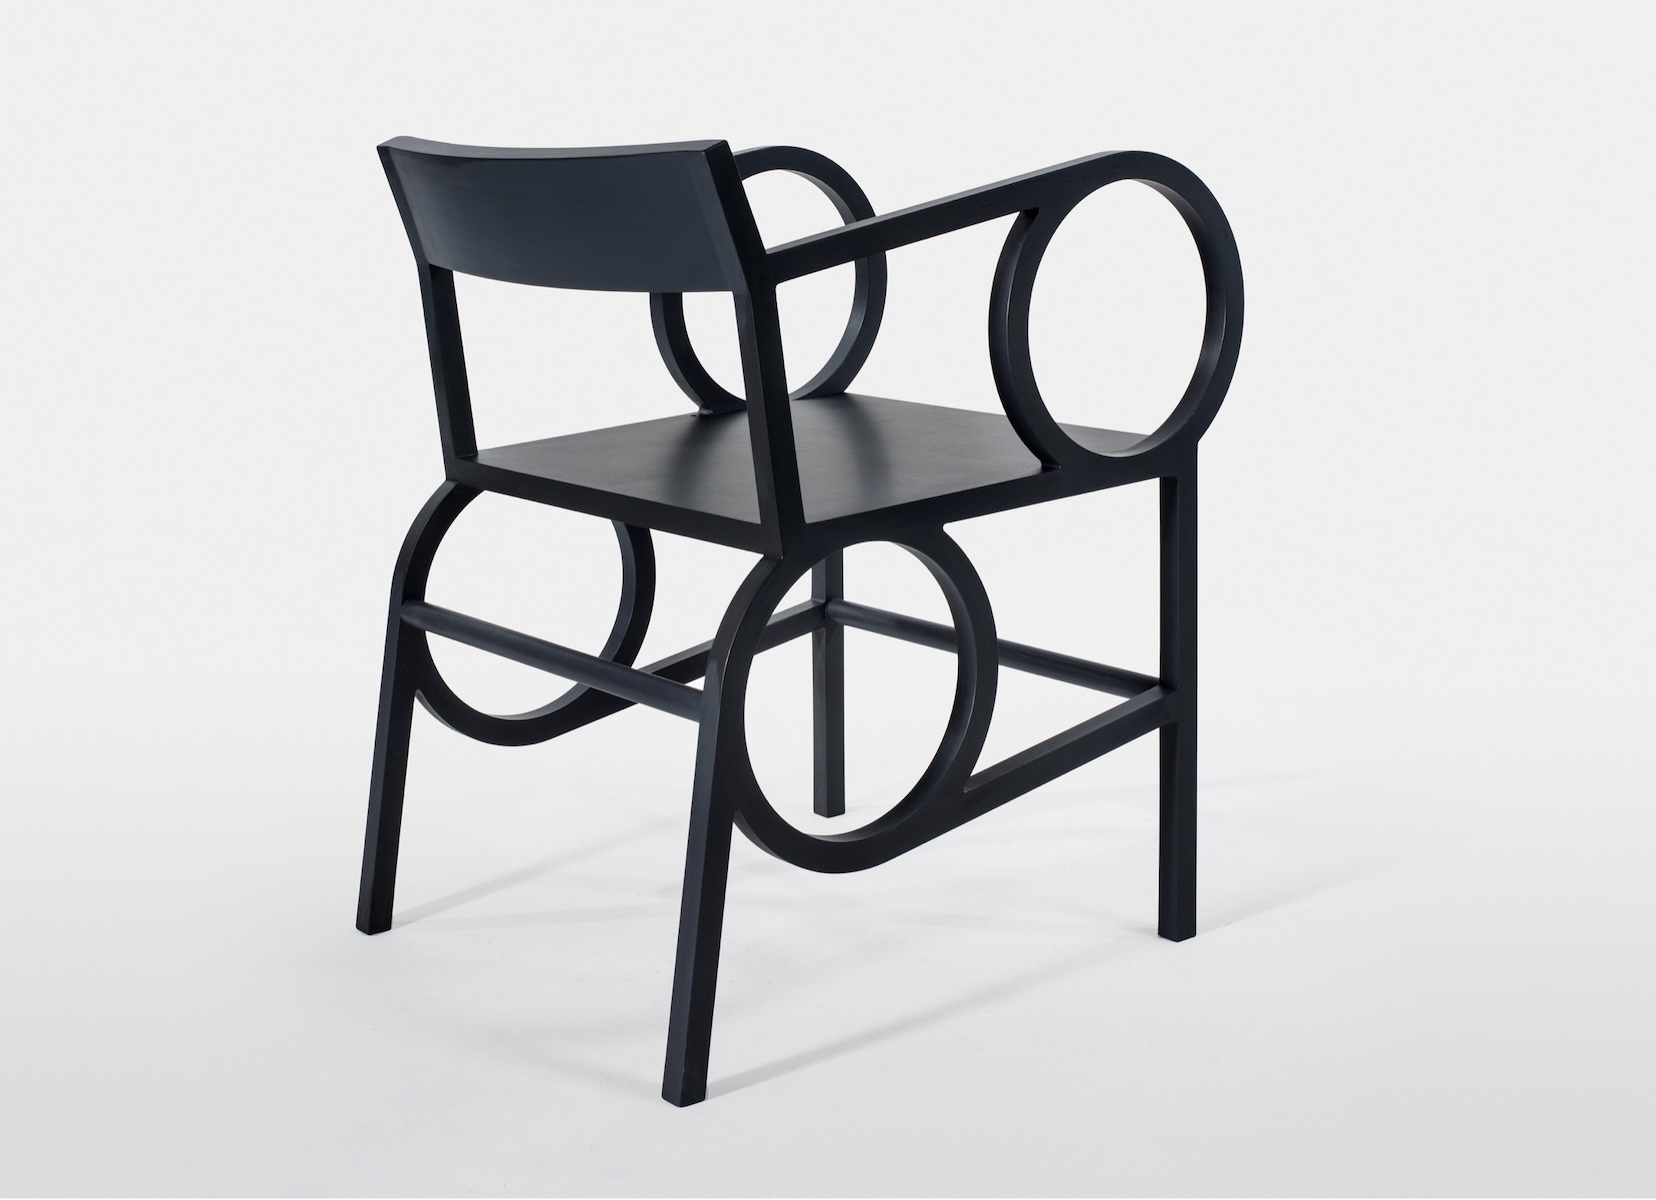 angled view of the Circle Arm Easy Chair by artist Christopher Kurtz